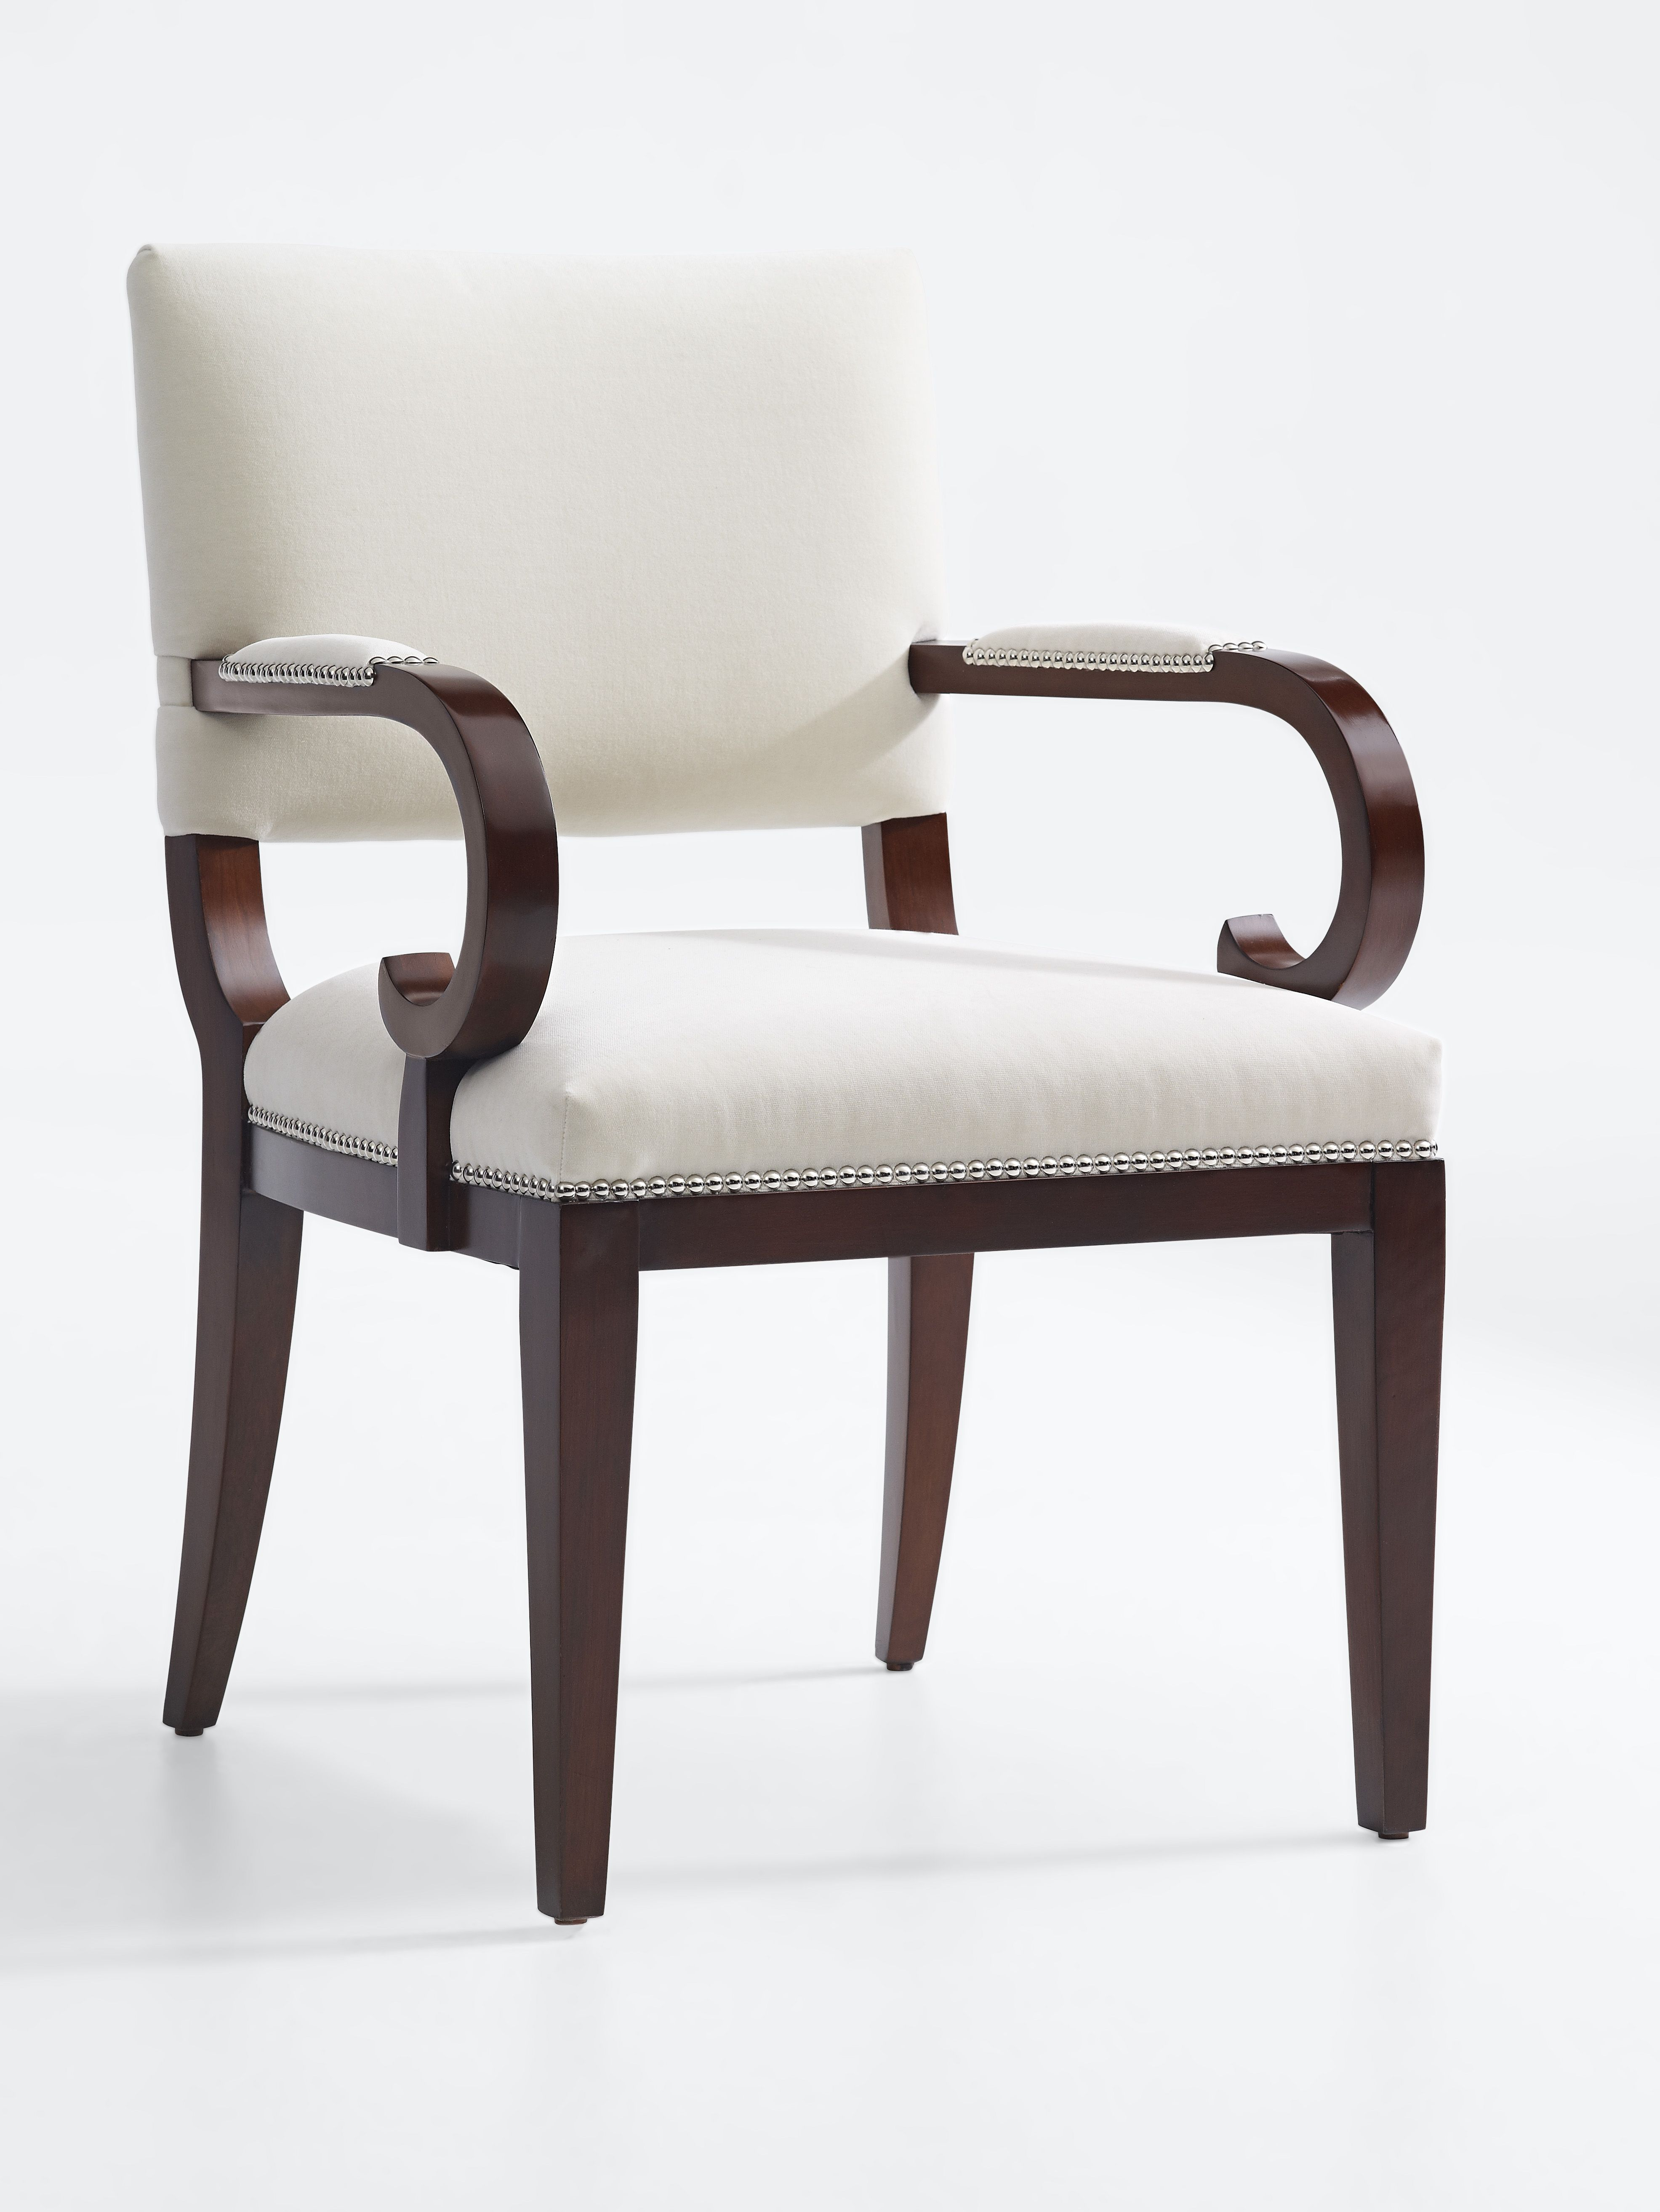 Ralph Lauren Home's Mayfair Dining Arm Chair | 【單椅】 | Pinterest Pertaining To Tate Arm Sofa Chairs (Image 12 of 20)